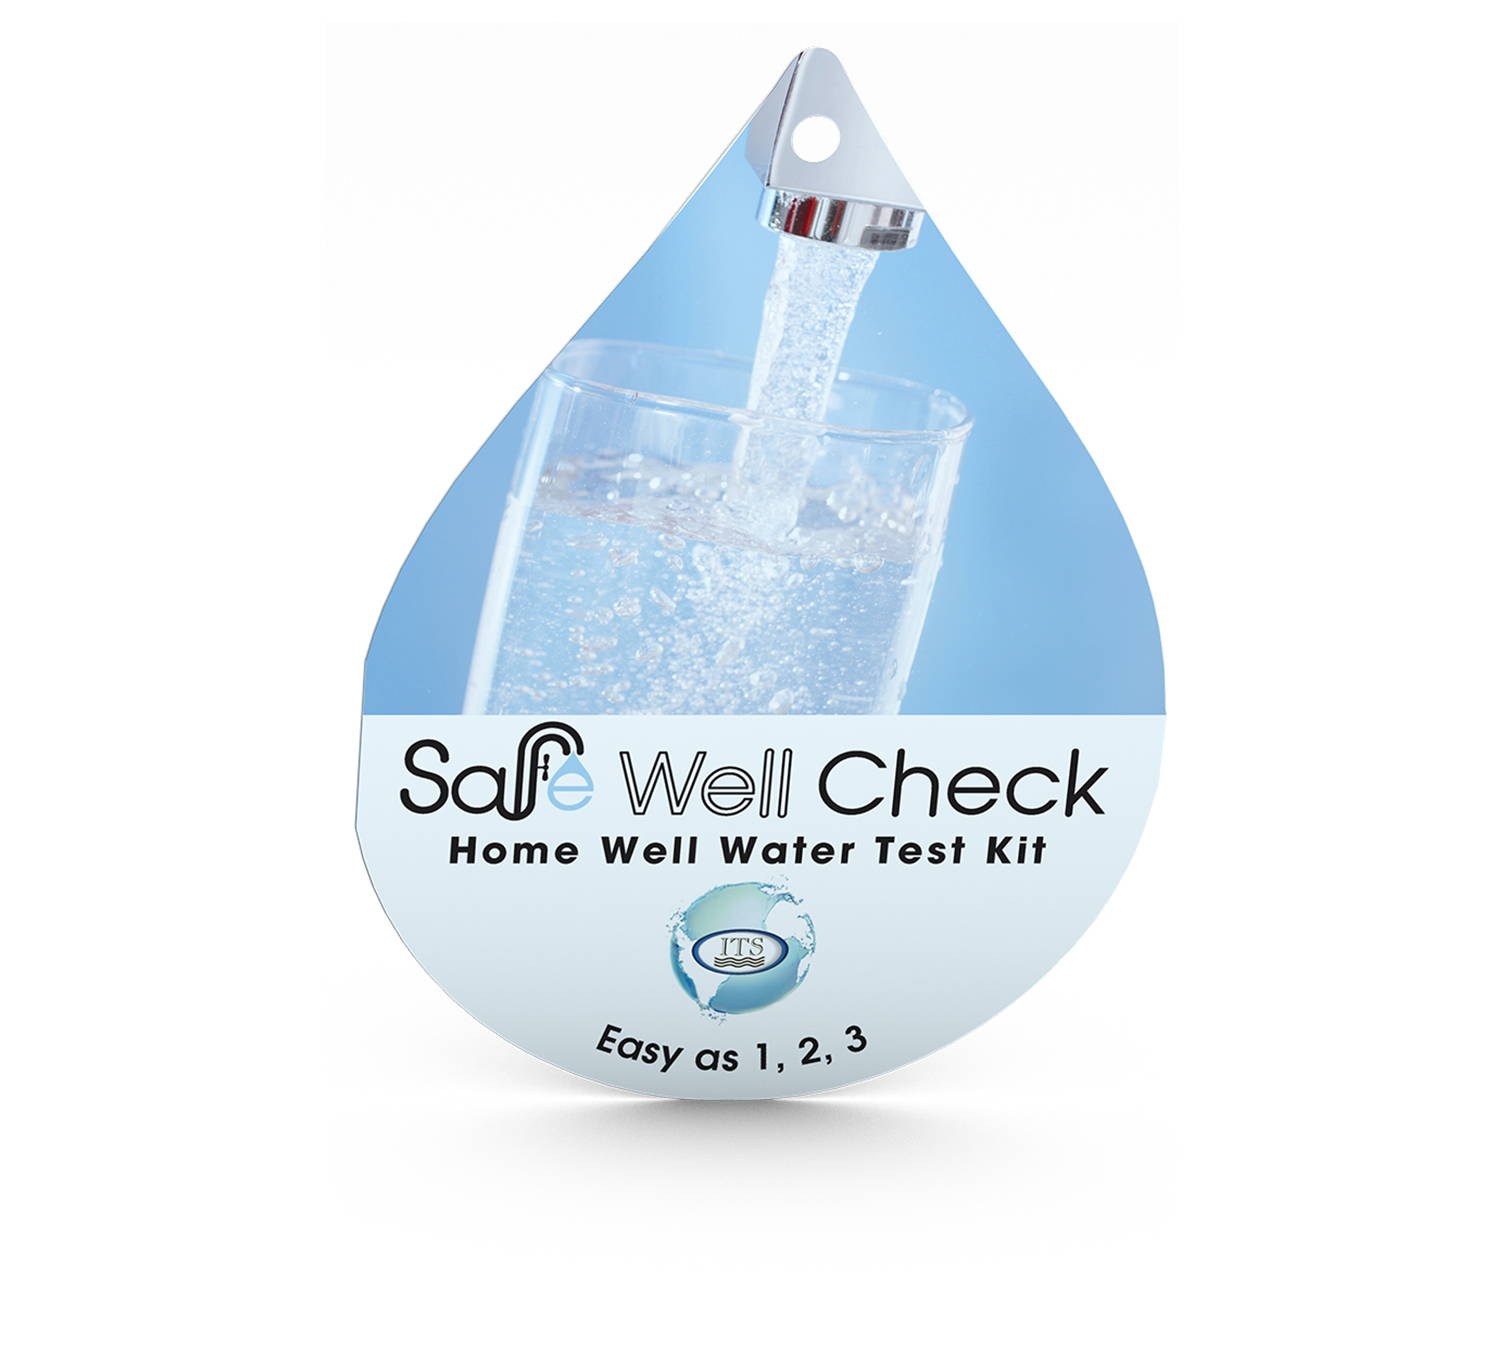 Safe Tap Check well water test kit